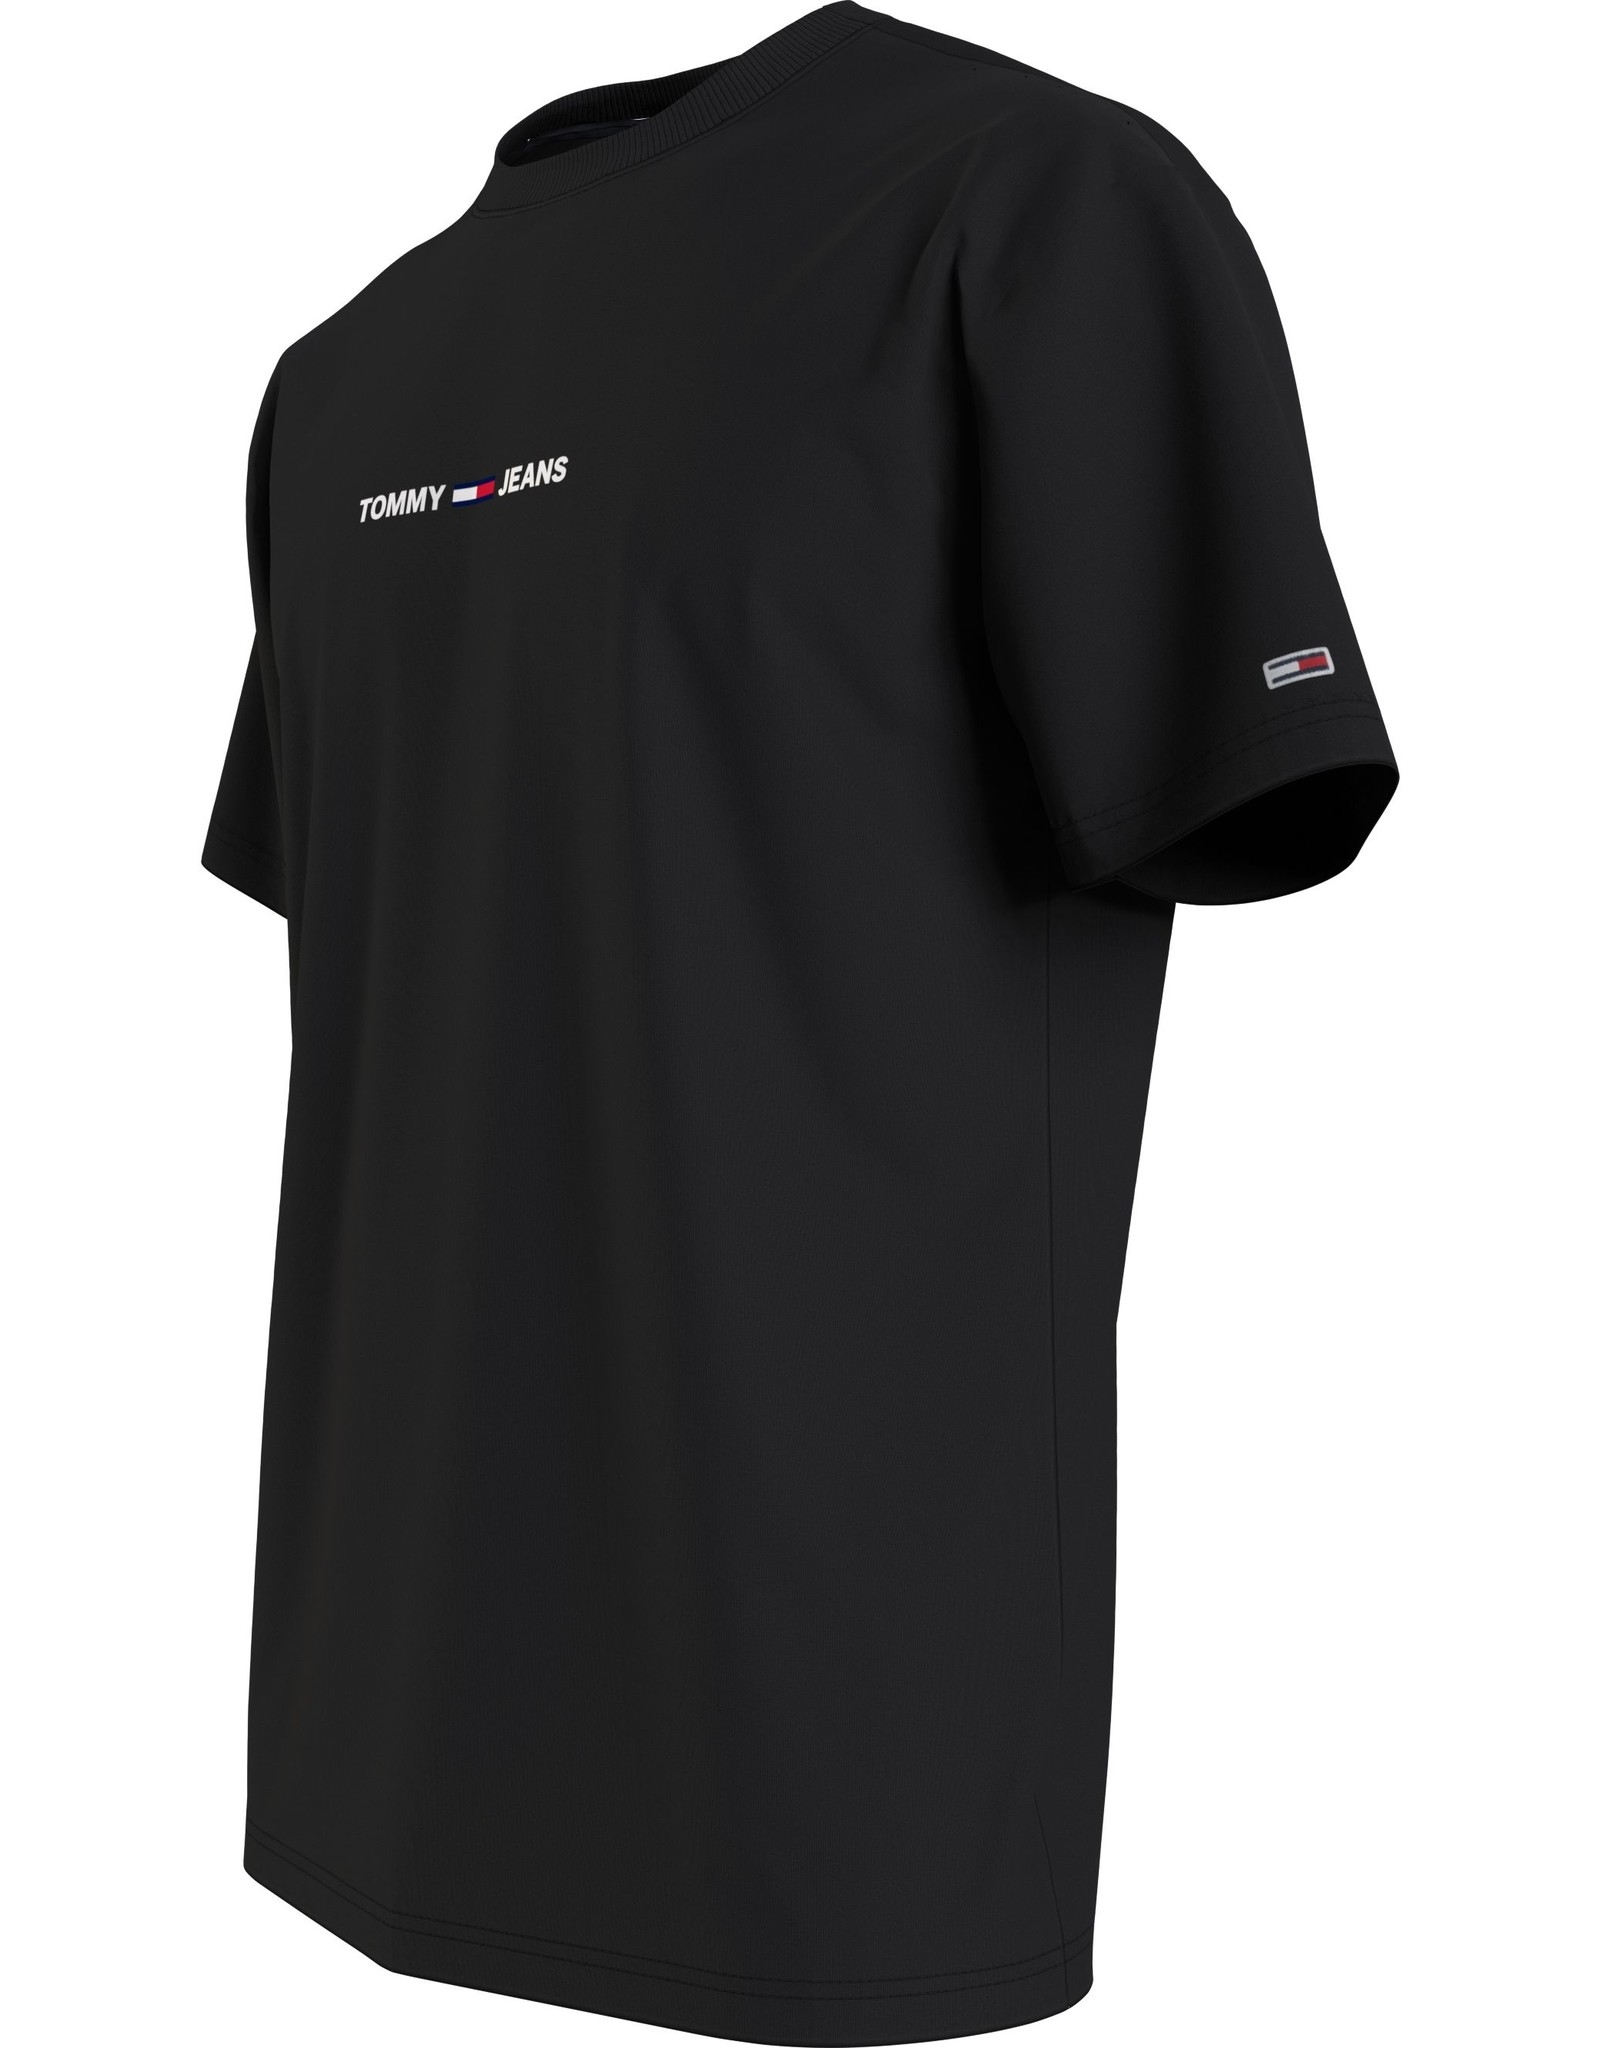 Tommy Jeans Small Logo Text Tee